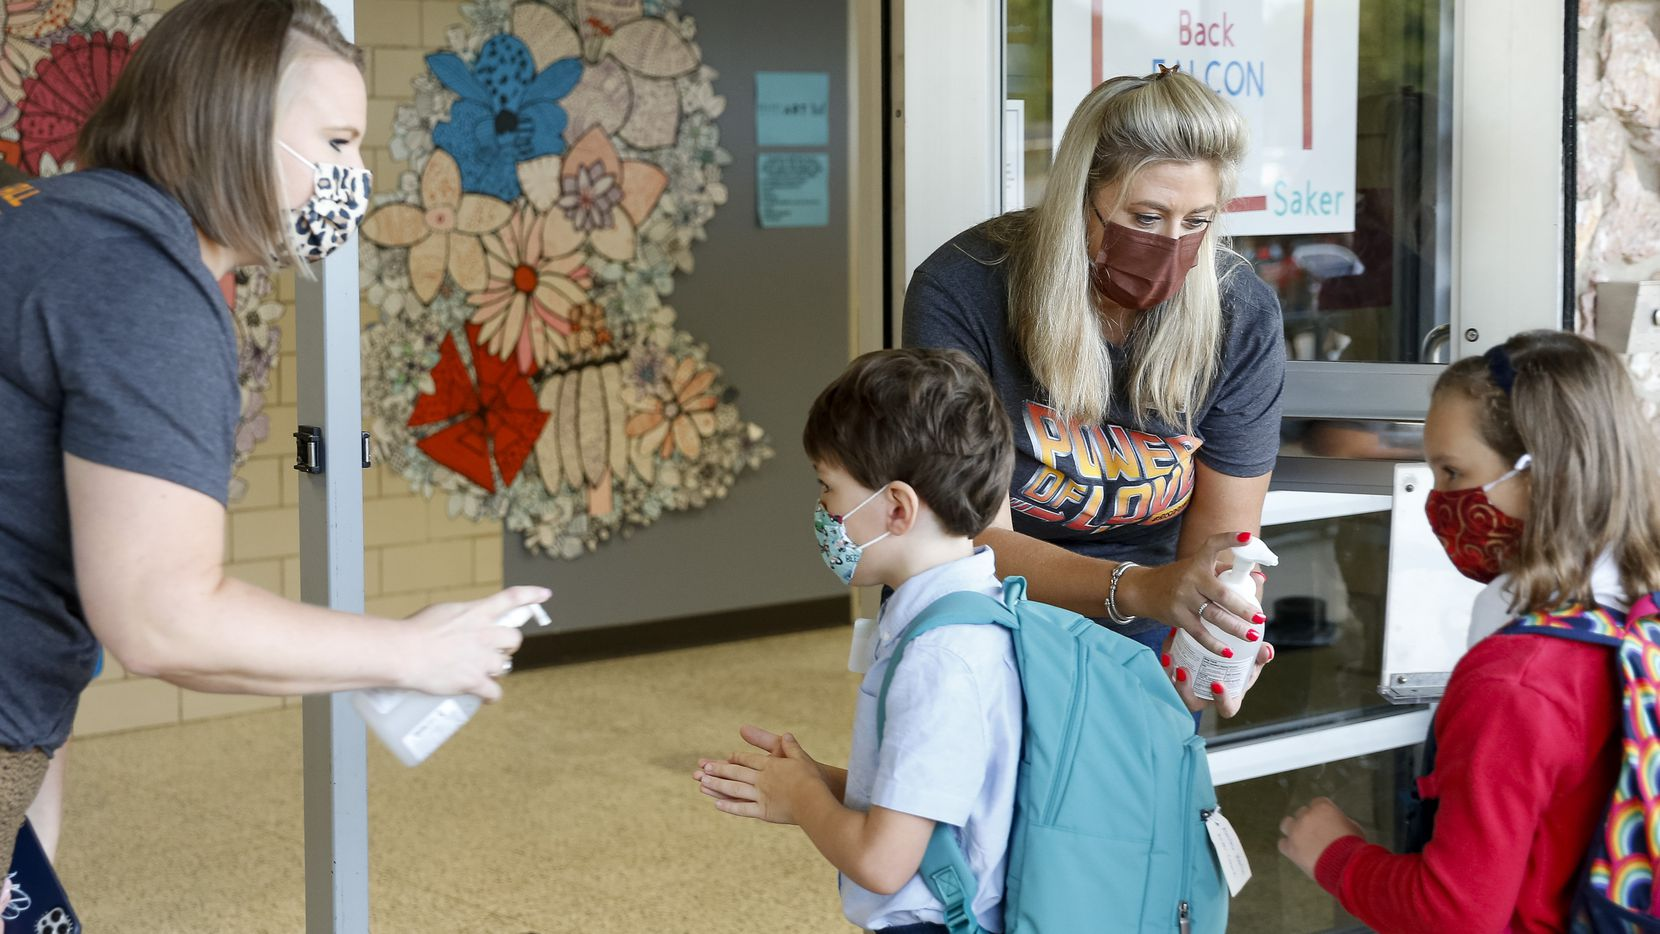 Assistant principal Catherine Bennett, left, and principal Kristin Strickland squirted sanitizer onto students' hands as they arrived for the first day of school at Arapaho Classical Magnet in the Richardson school district in August.  Richardson ISD has seen some of the ugliest fights in North Texas over its mask mandate.